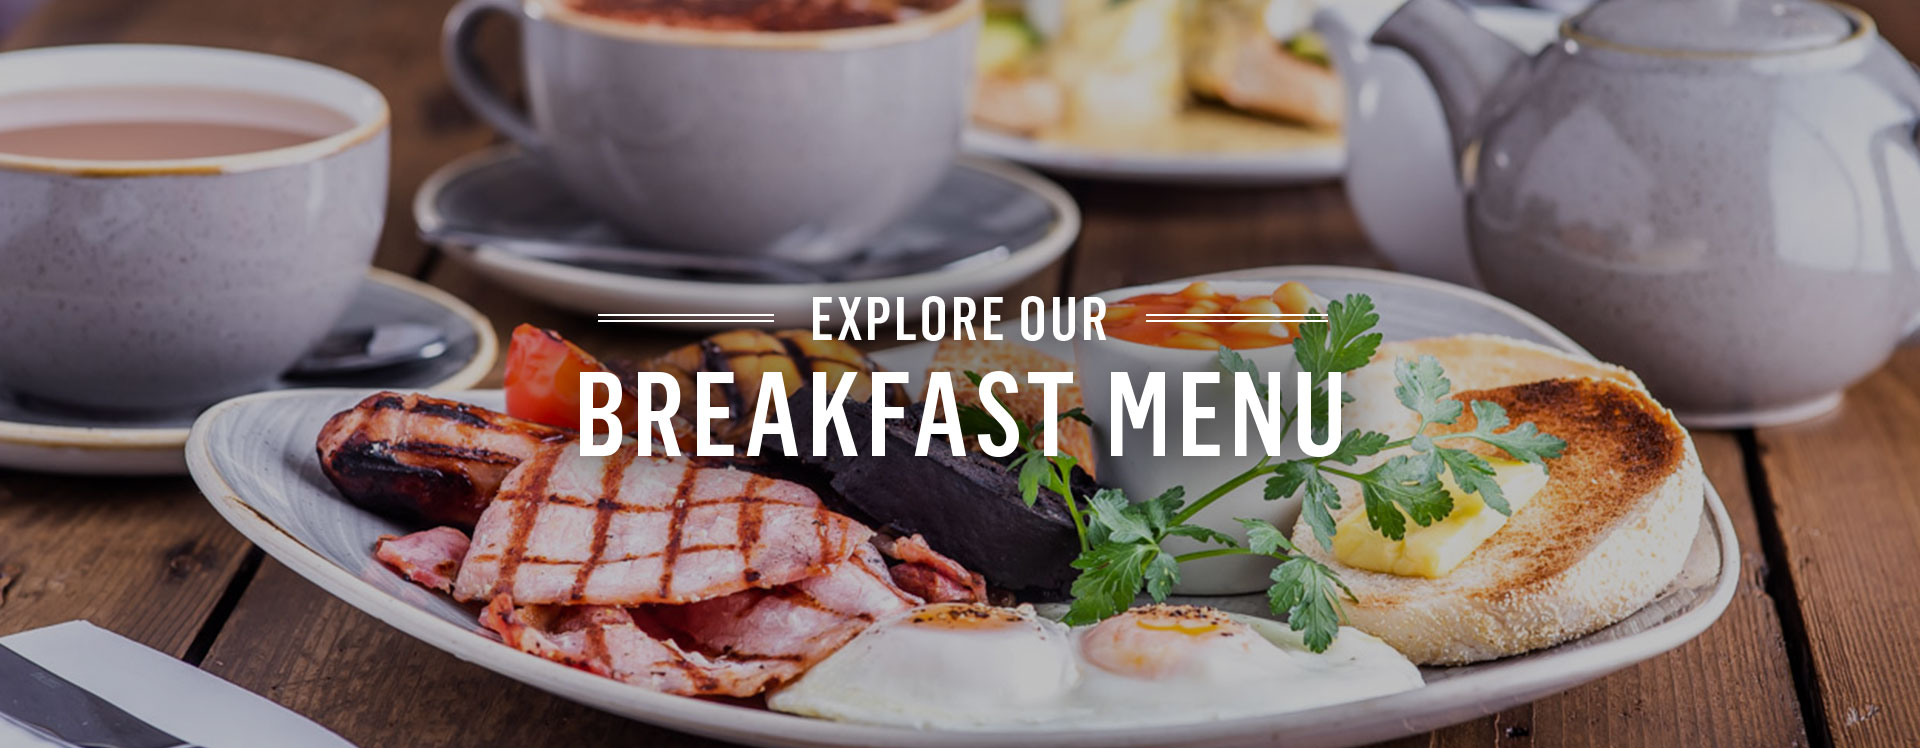 Breakfast at The Clachan - Book a table